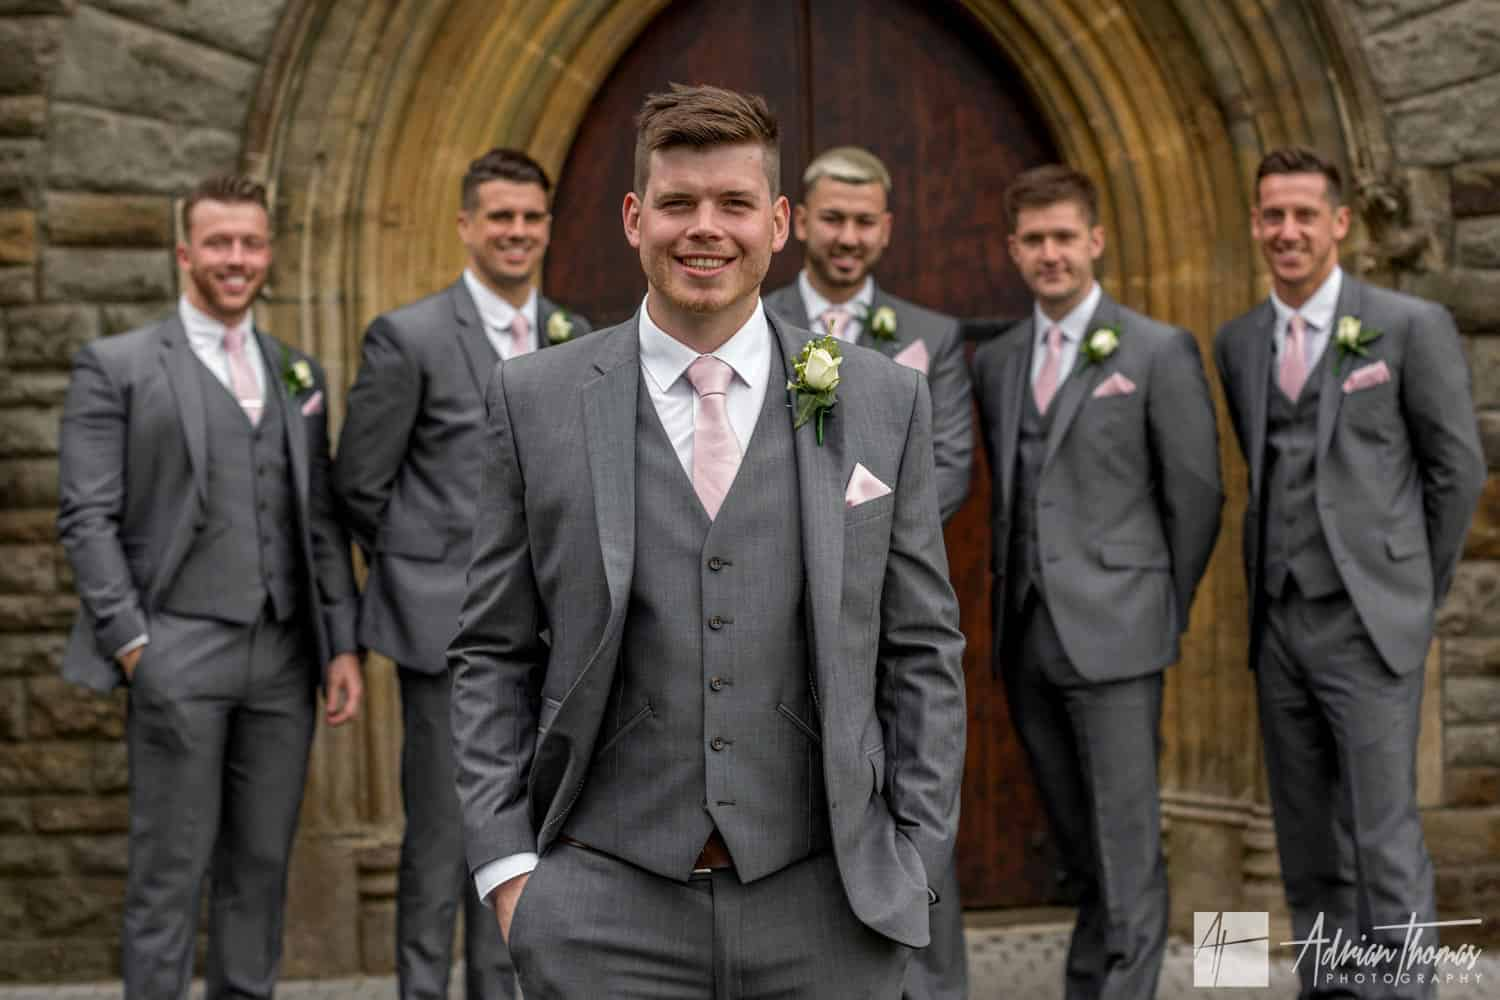 Groom and ushers outside St Martin's Church Caerphilly wedding.